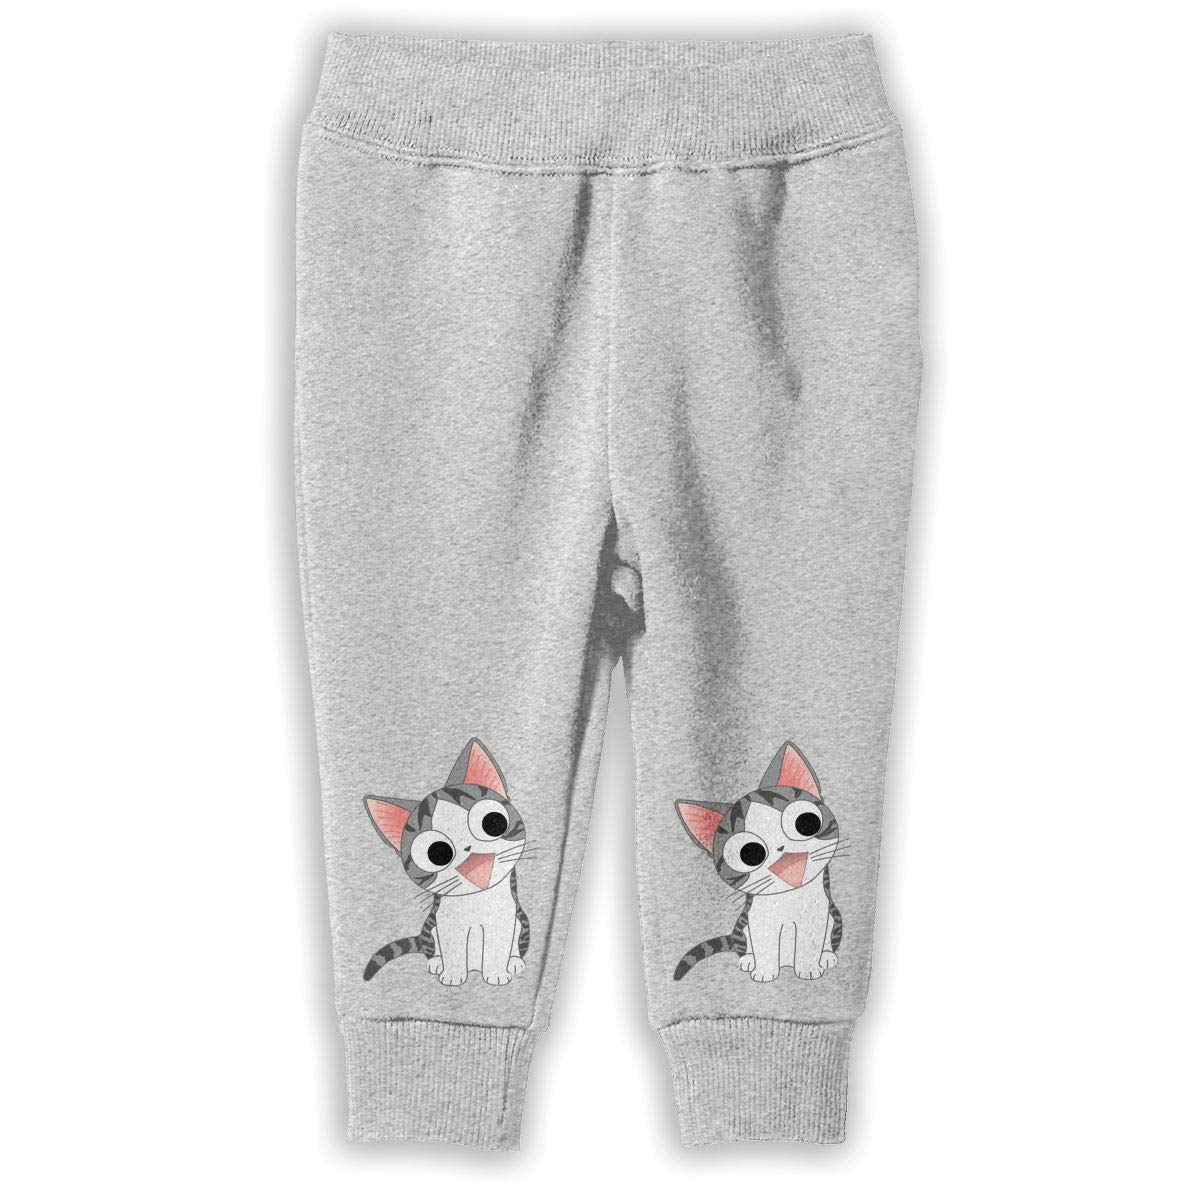 2-6T Cute Shrimp Childrens Sweatpants Classic Jogger Pants Active Pants Cotton Pants